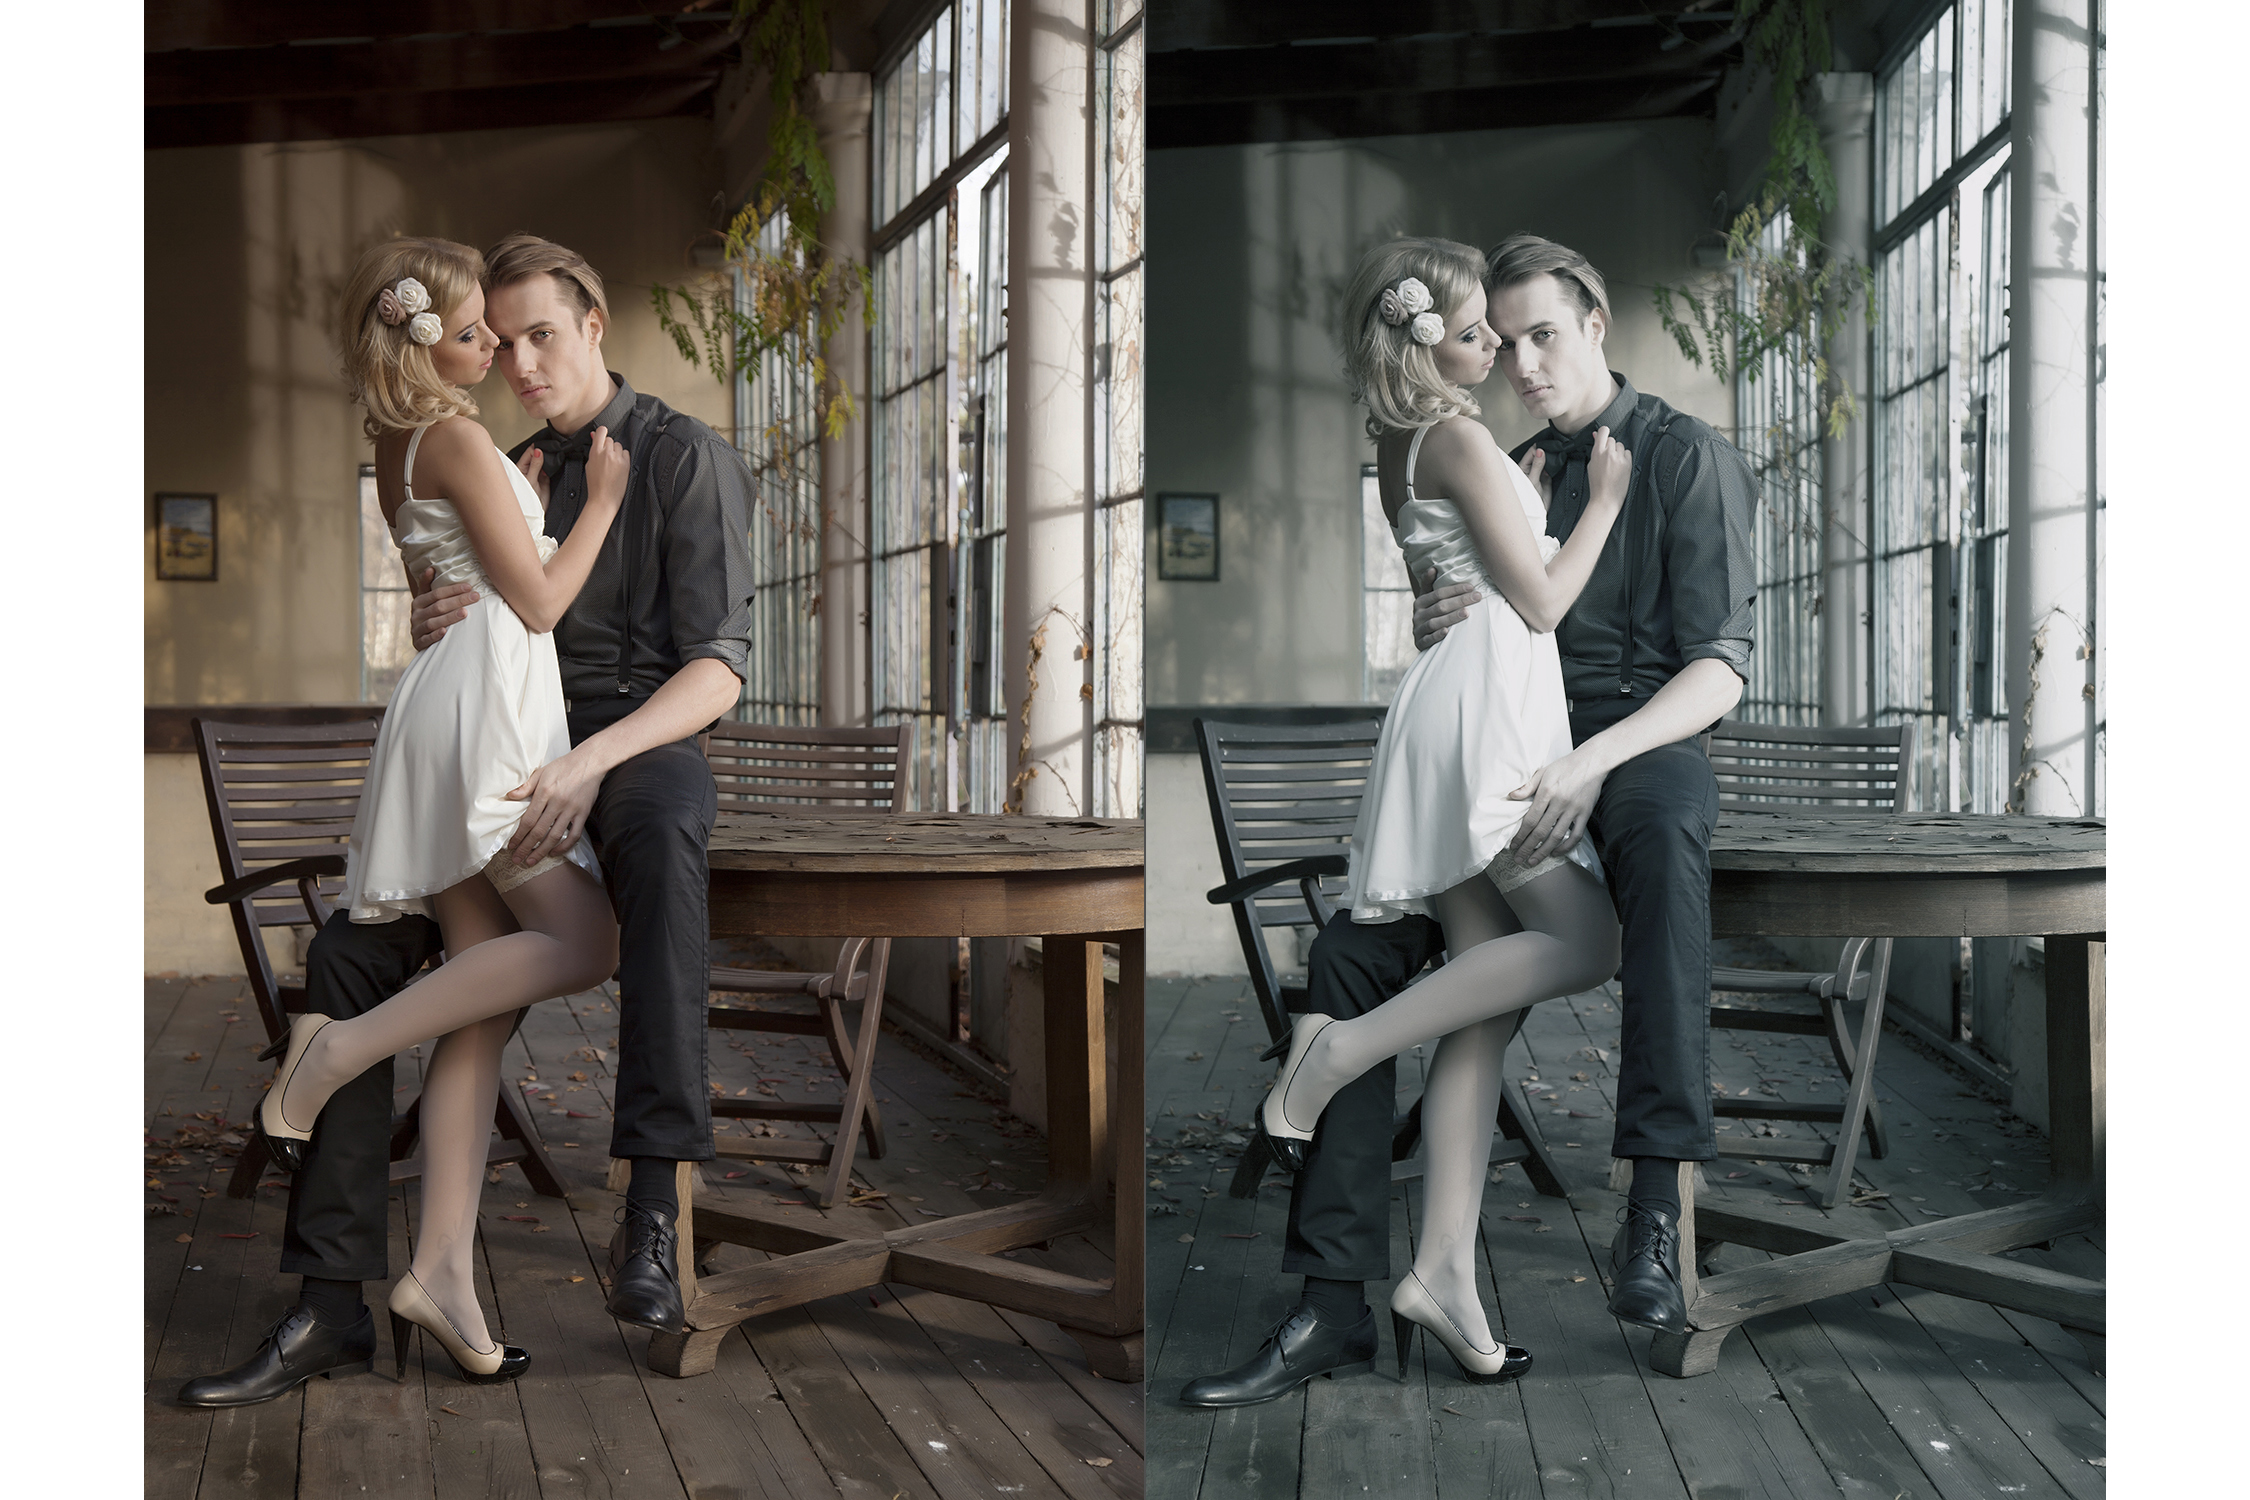 158 Retro Vintage Photoshop Actions Collection (Action for photoshop CS5,CS6,CC) example image 4